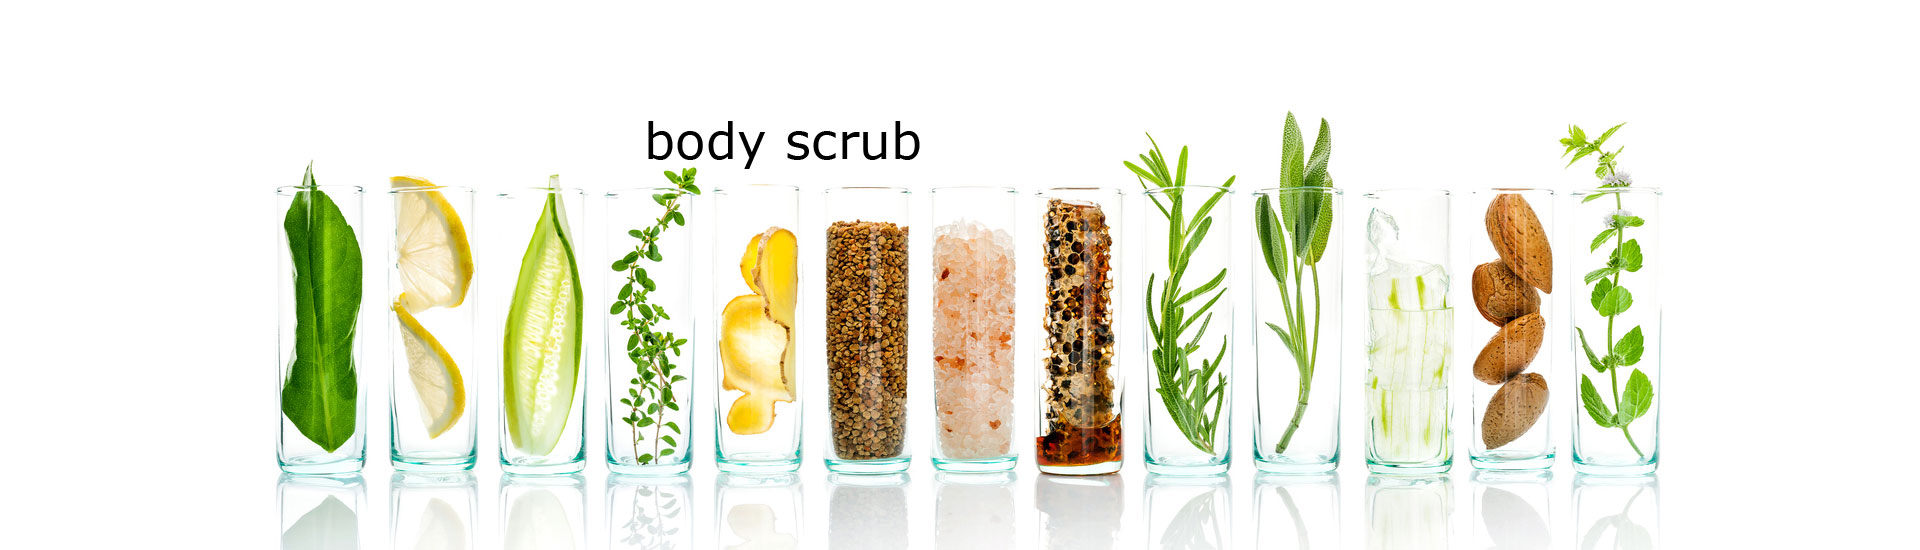 body scrub